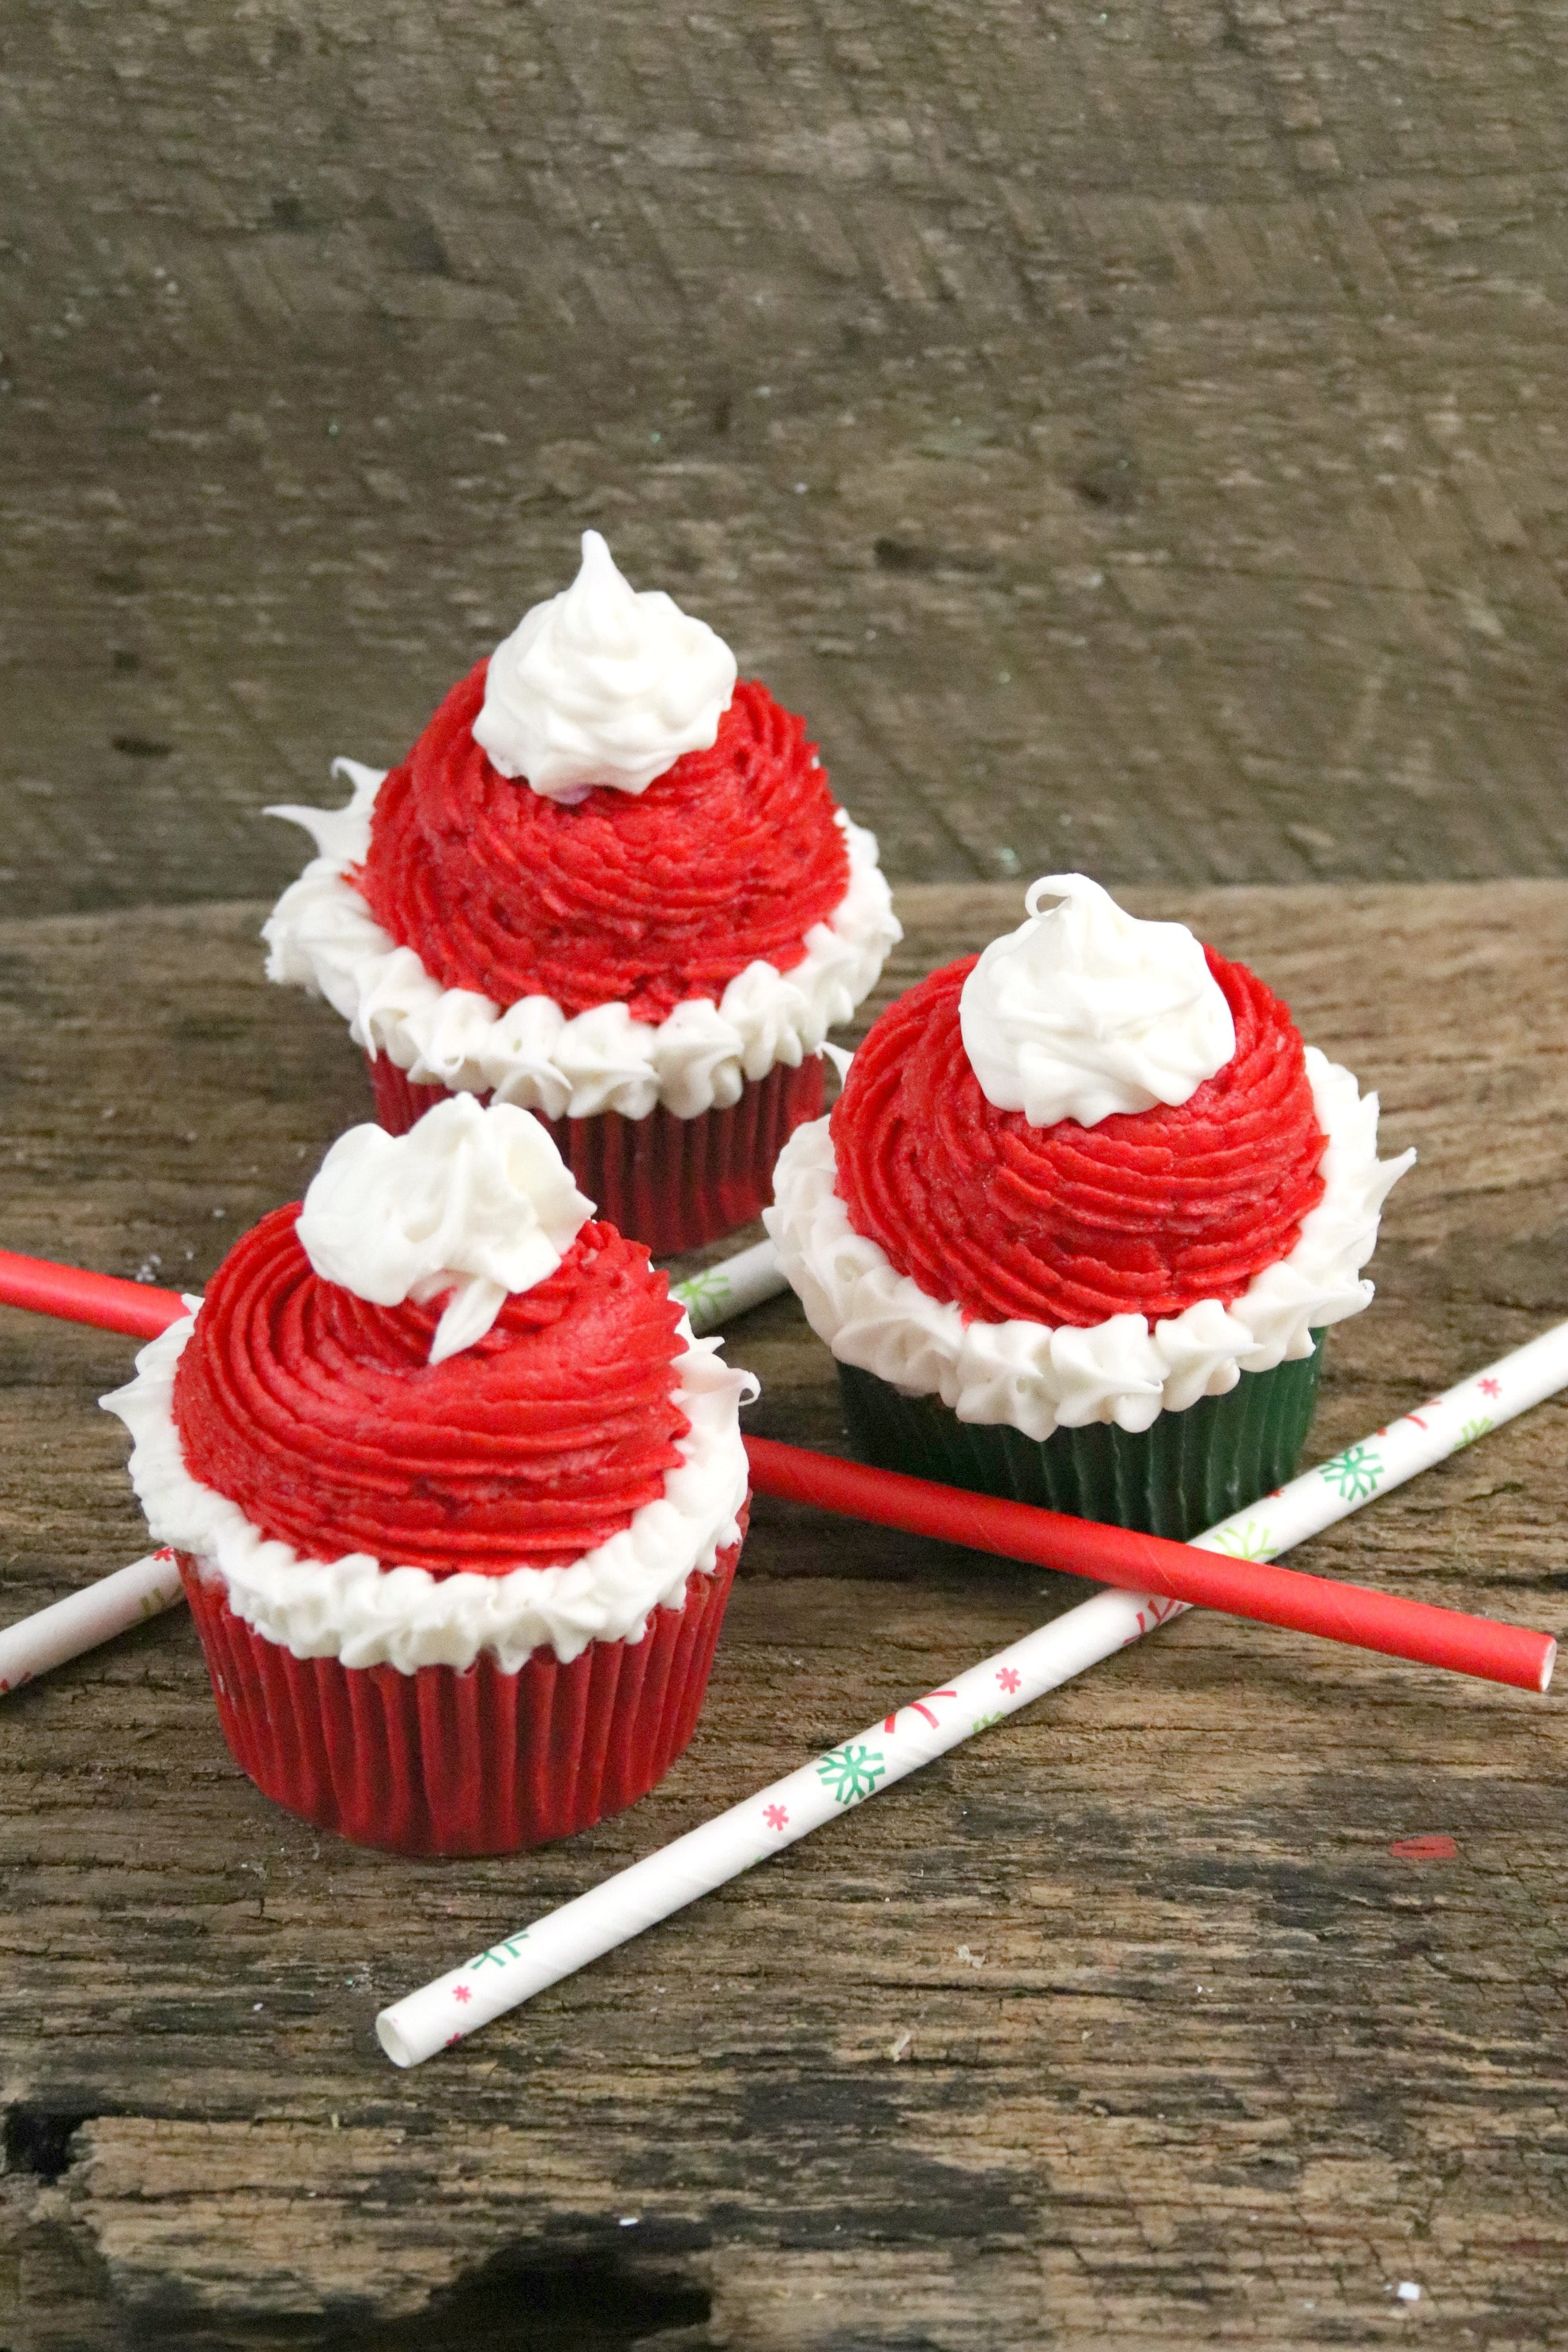 These fun a festive Santa hat Christmas Cupcakes are super fun to make with kids! The recipe features a cocoa buttercream frosting perfect for the season! The red and green inside makes a fun treat for kids! #holidaybaking #christmascupcakes #